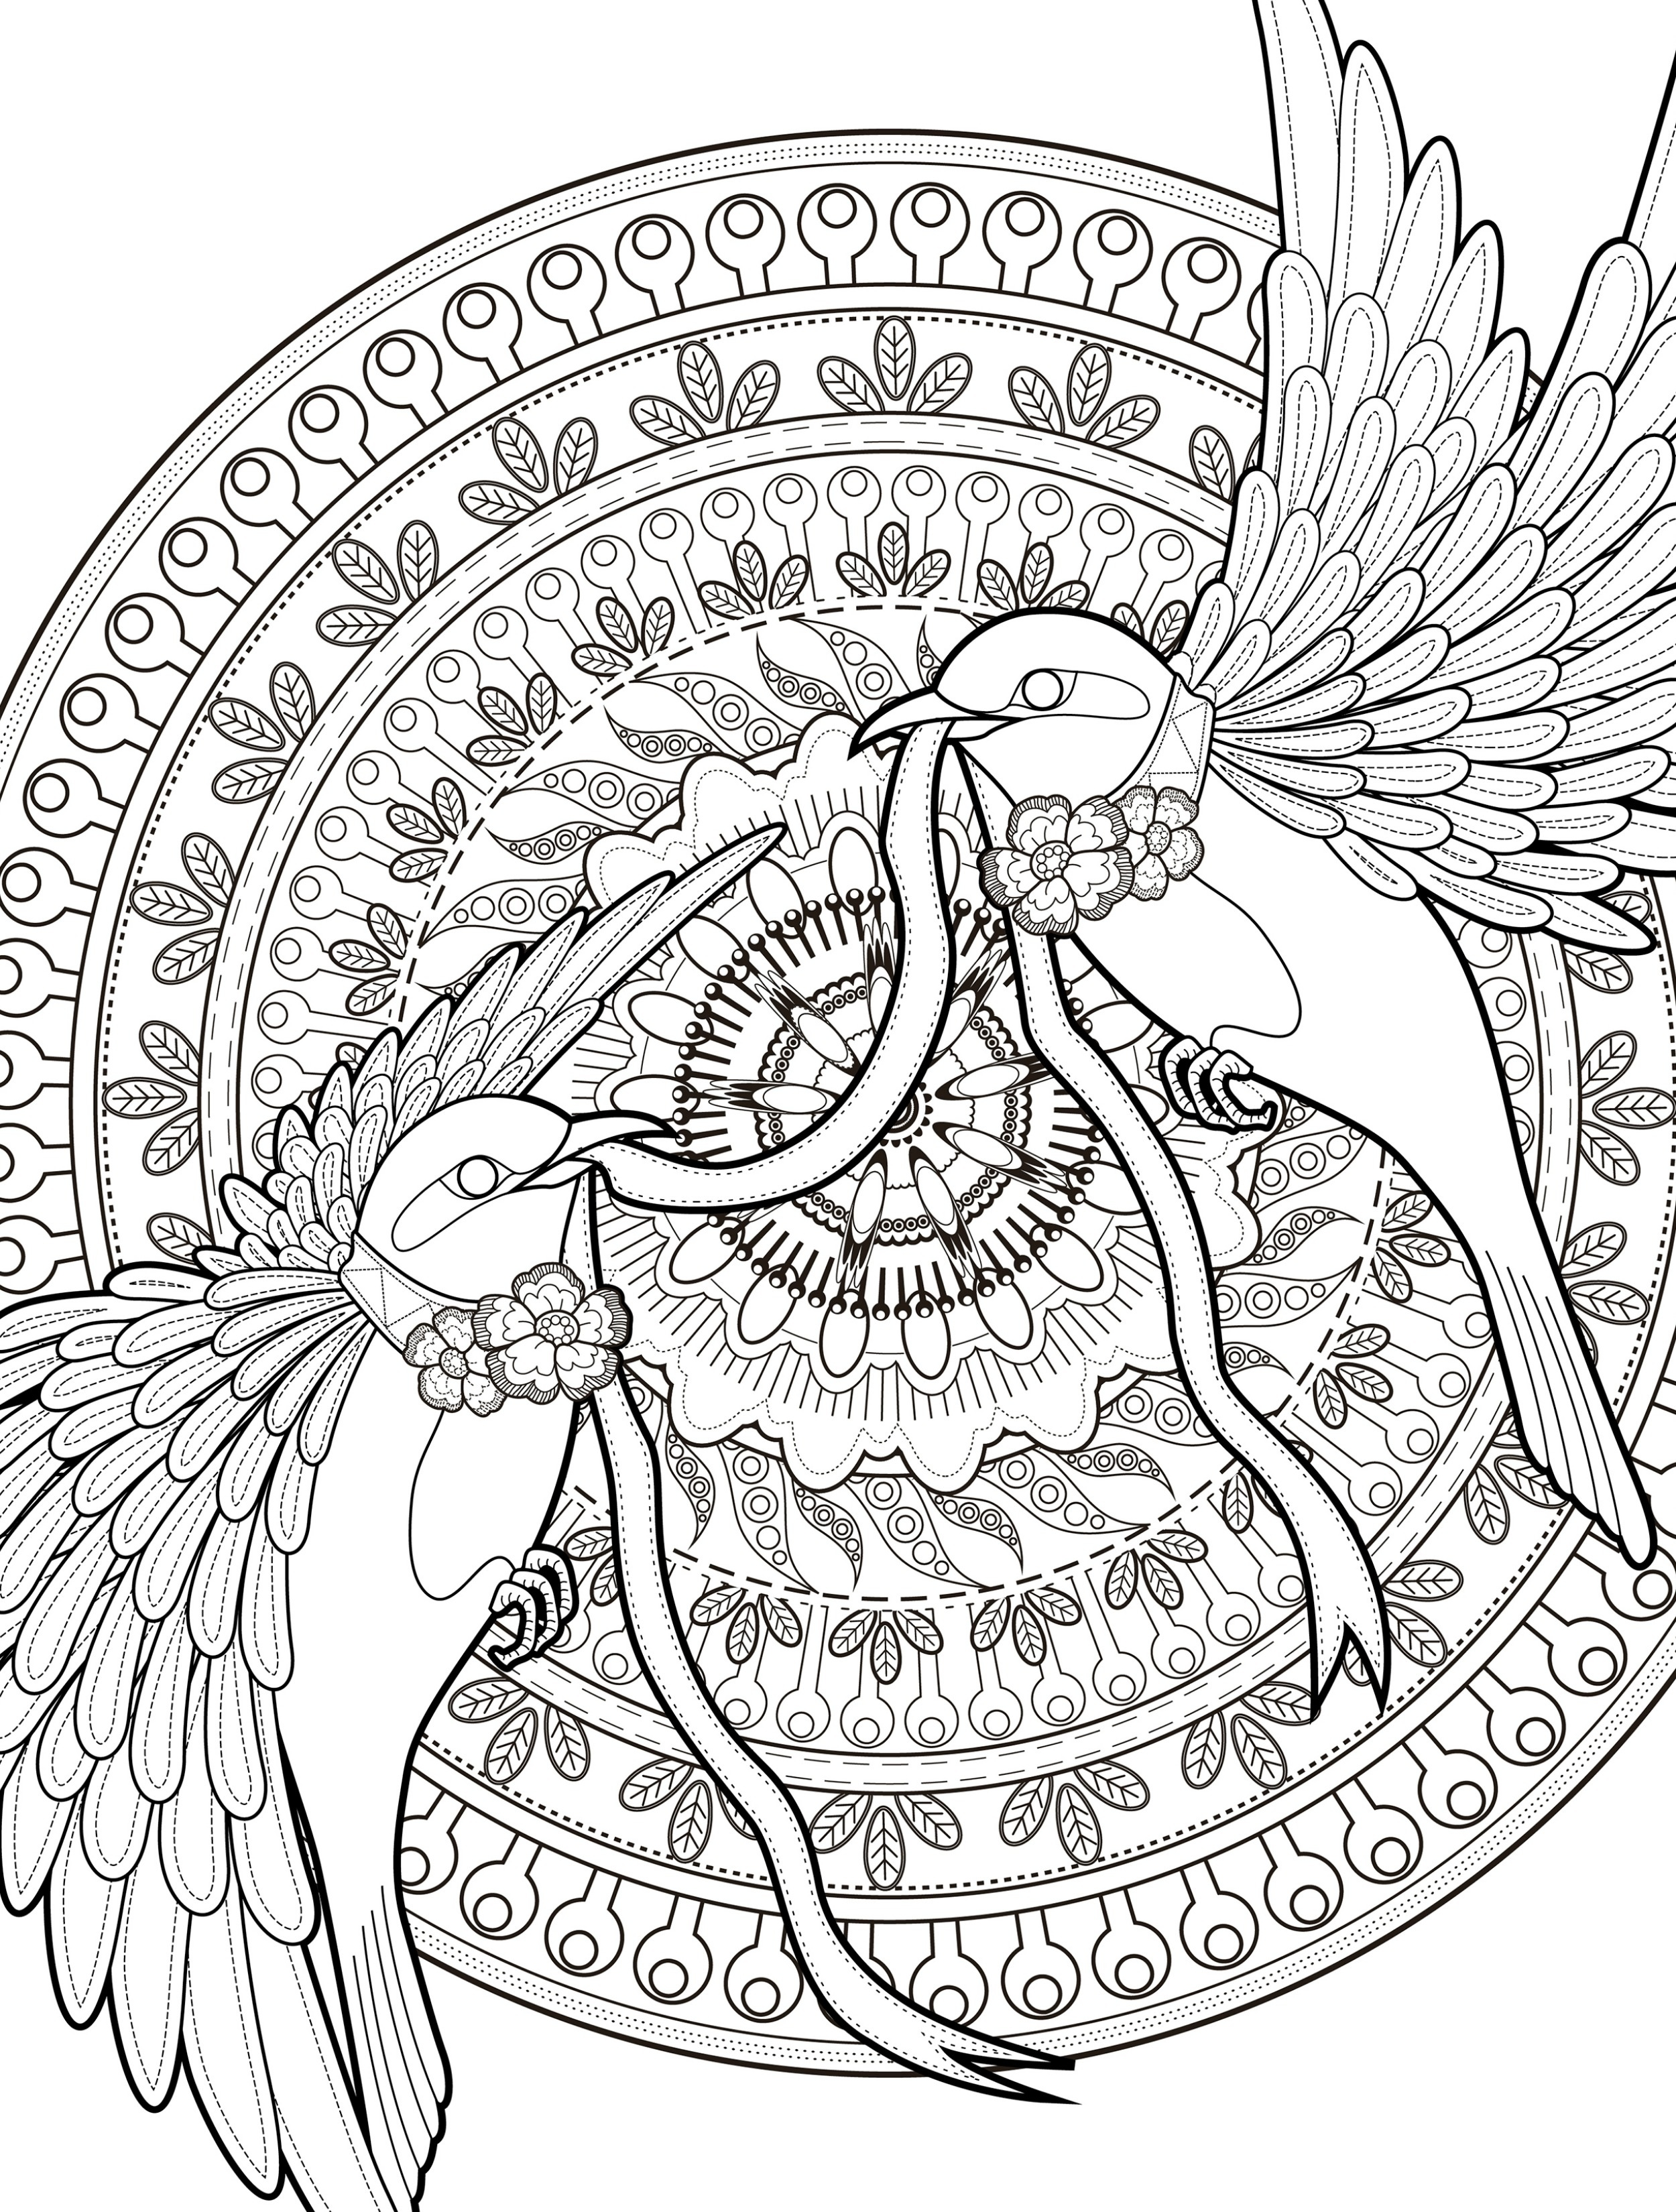 adult coloring books love bird